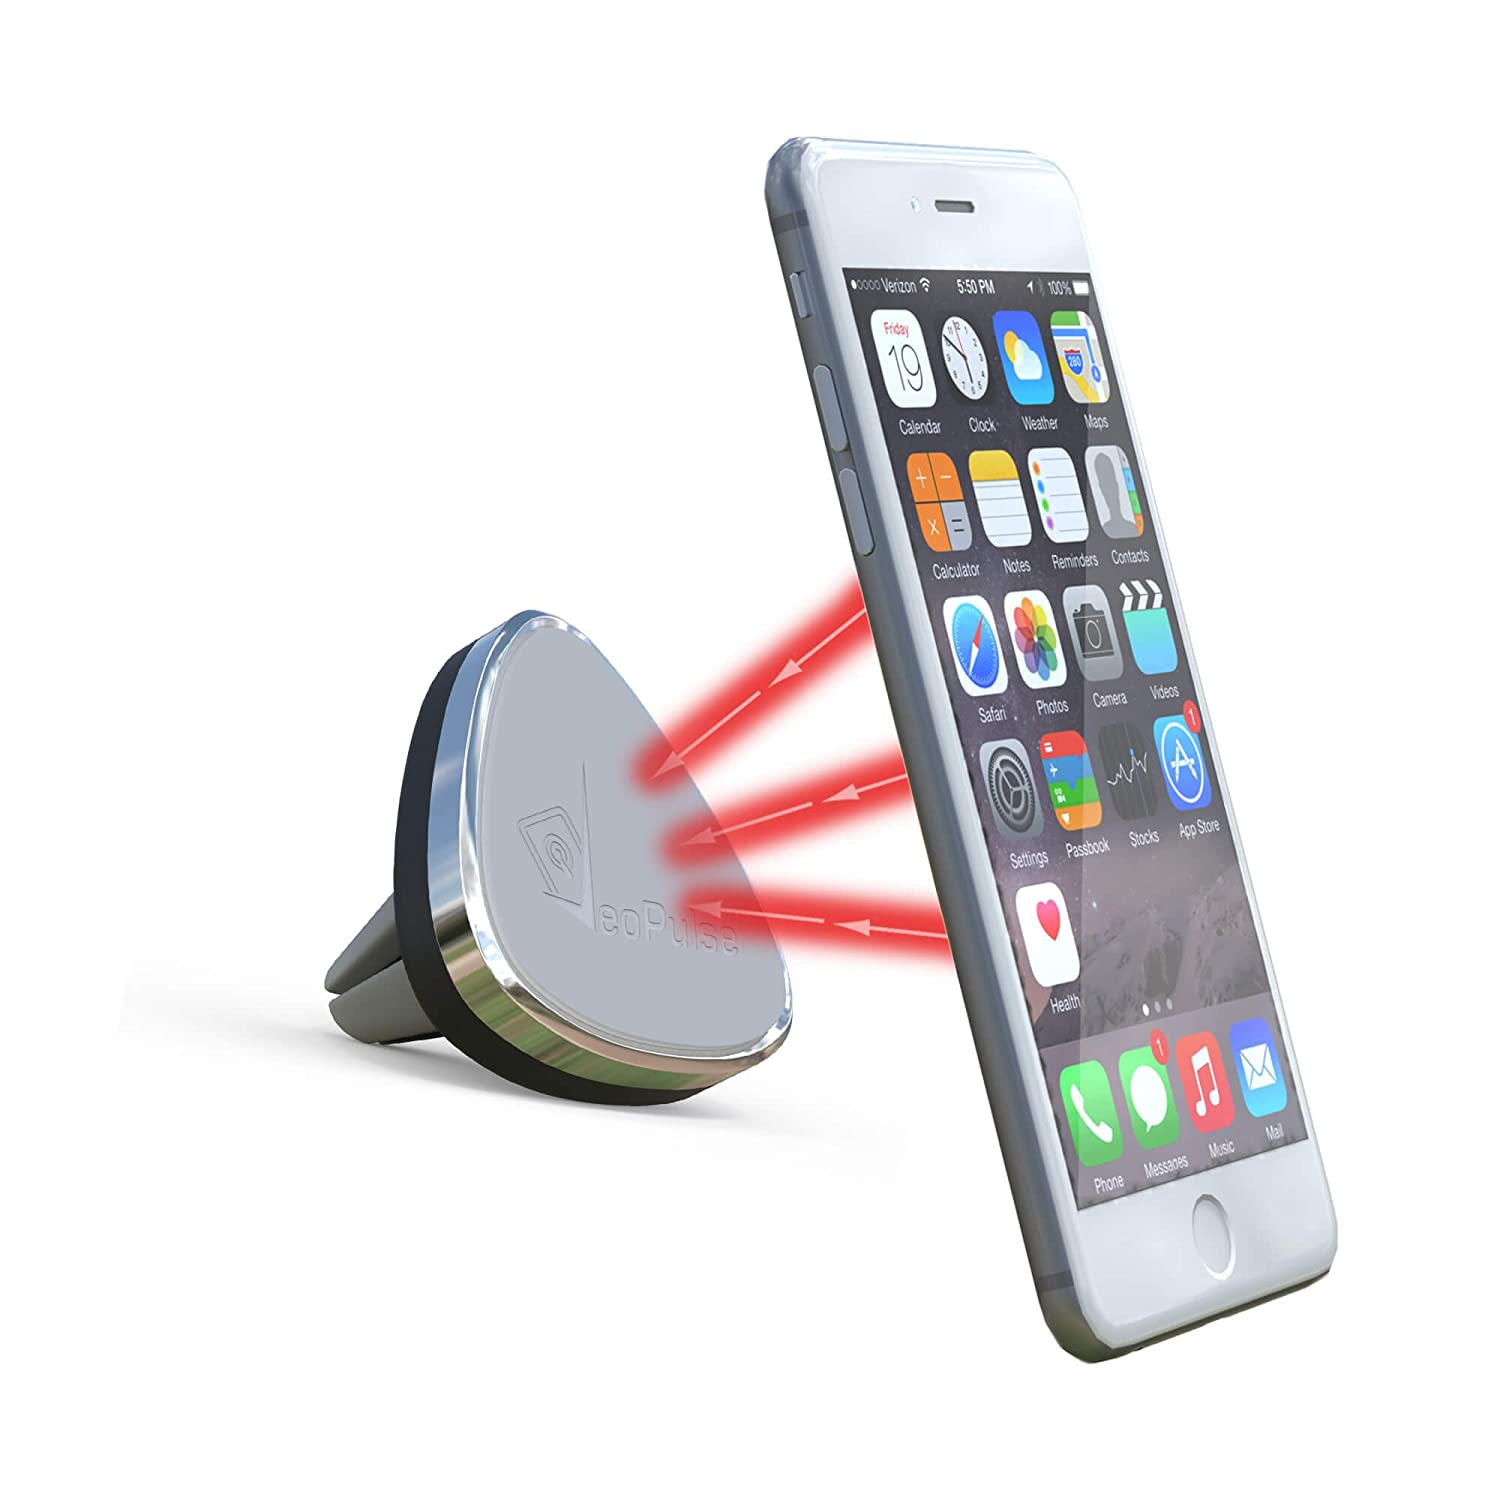 Veopulse Phone Holder Magnetic For Car Air Vent Grey Fdt Motor Universal Electronics